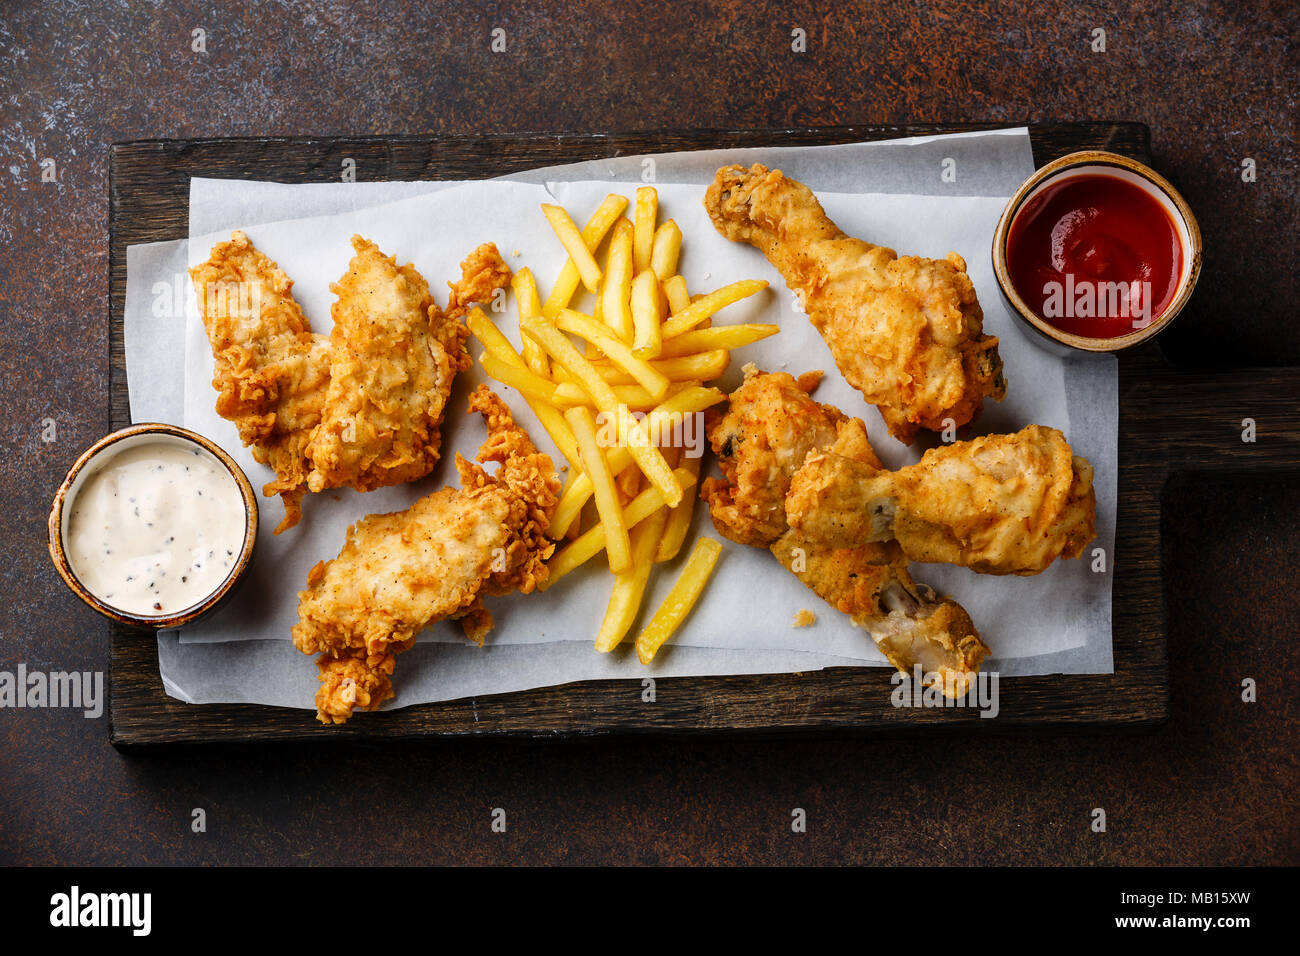 Fried breaded chicken legs fast food with popular sauce on brown background - Stock Image